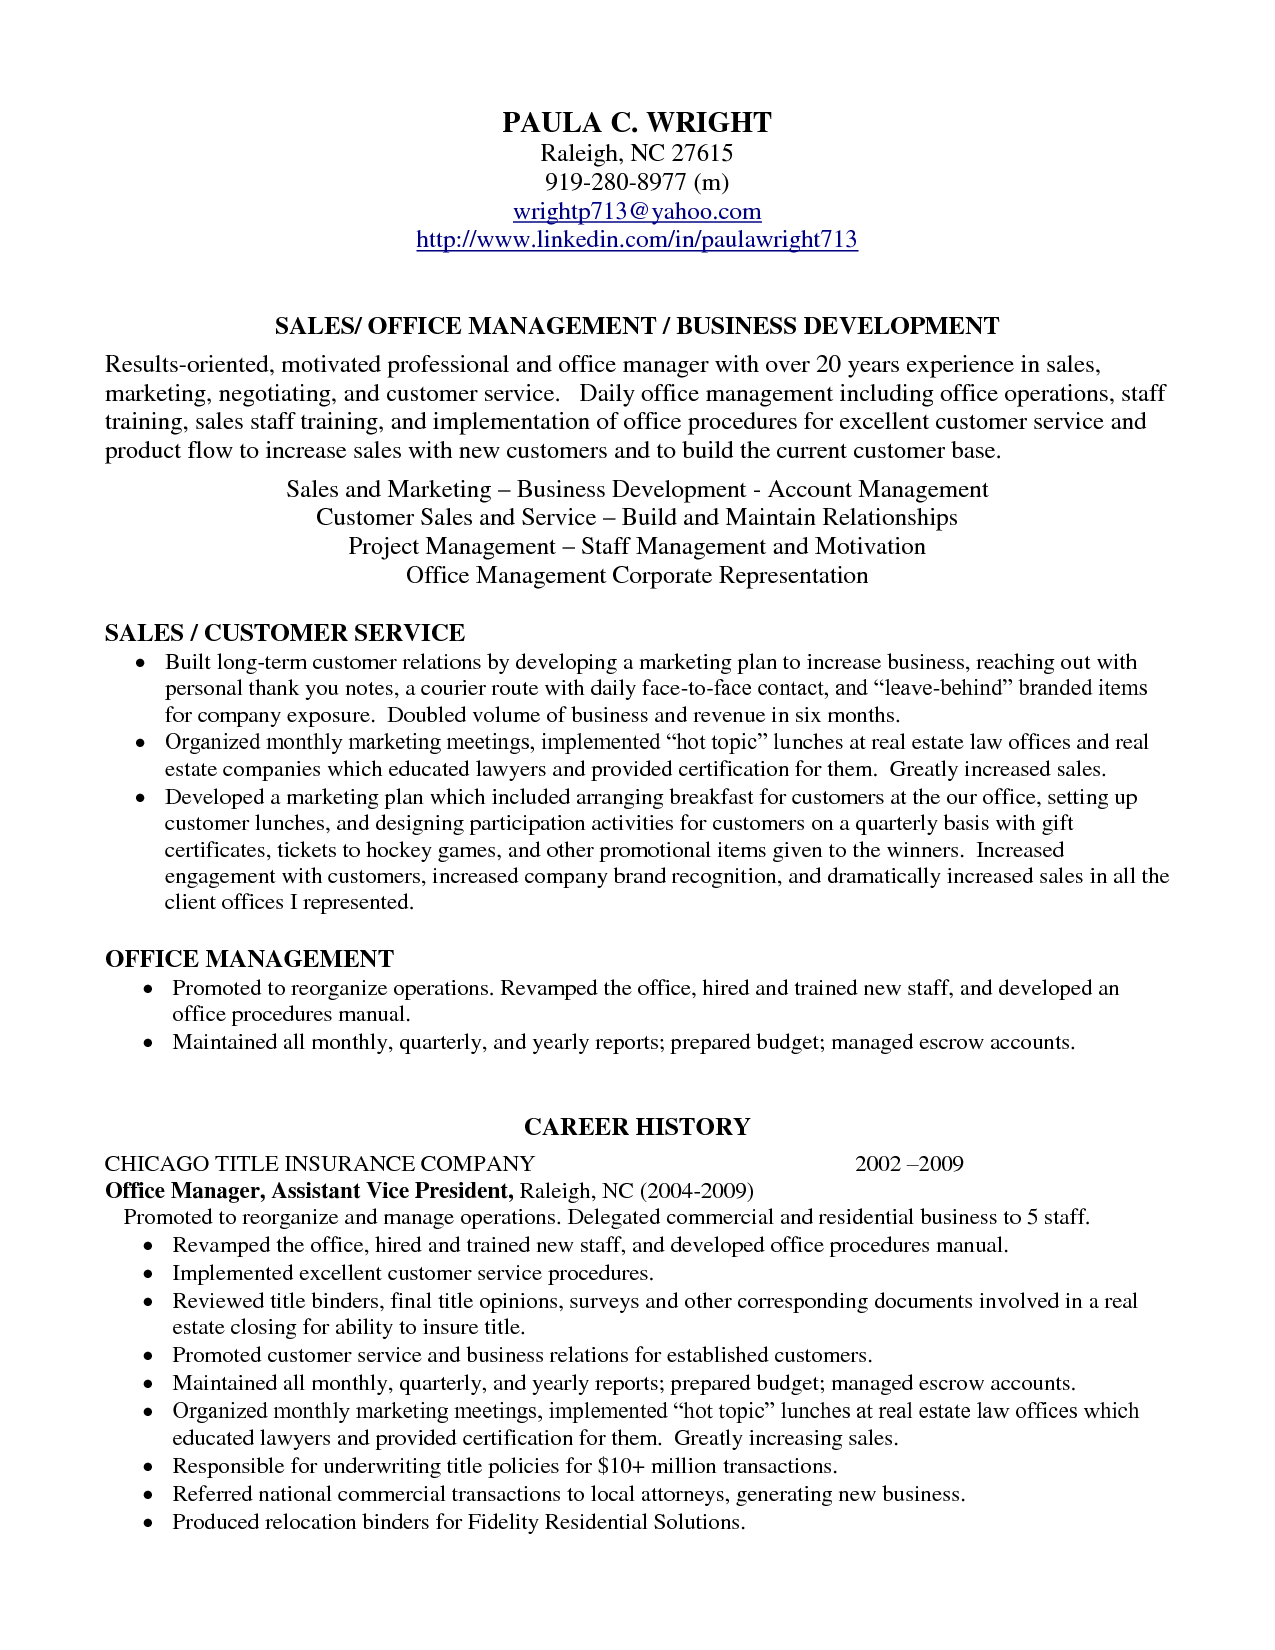 Sample Profile Summary For Resume Professional Profile Resume Examplesresume Professional Profile .